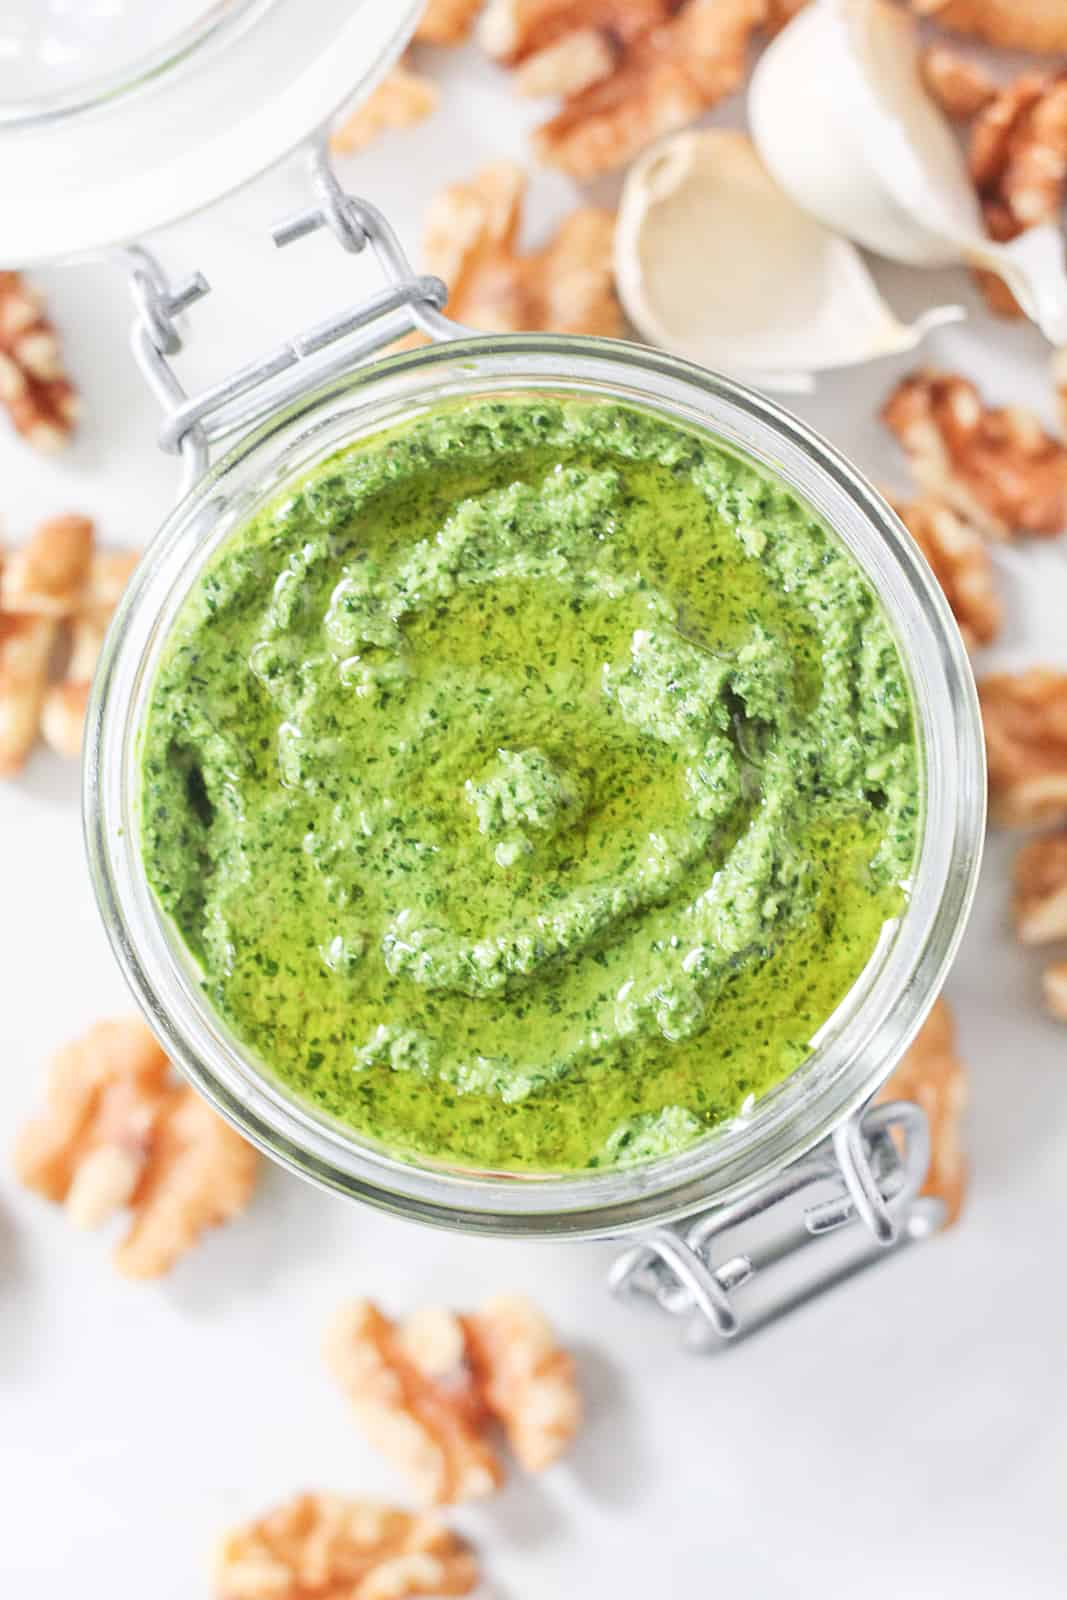 Rocket pesto in a glass jar drizzled with olive oil.